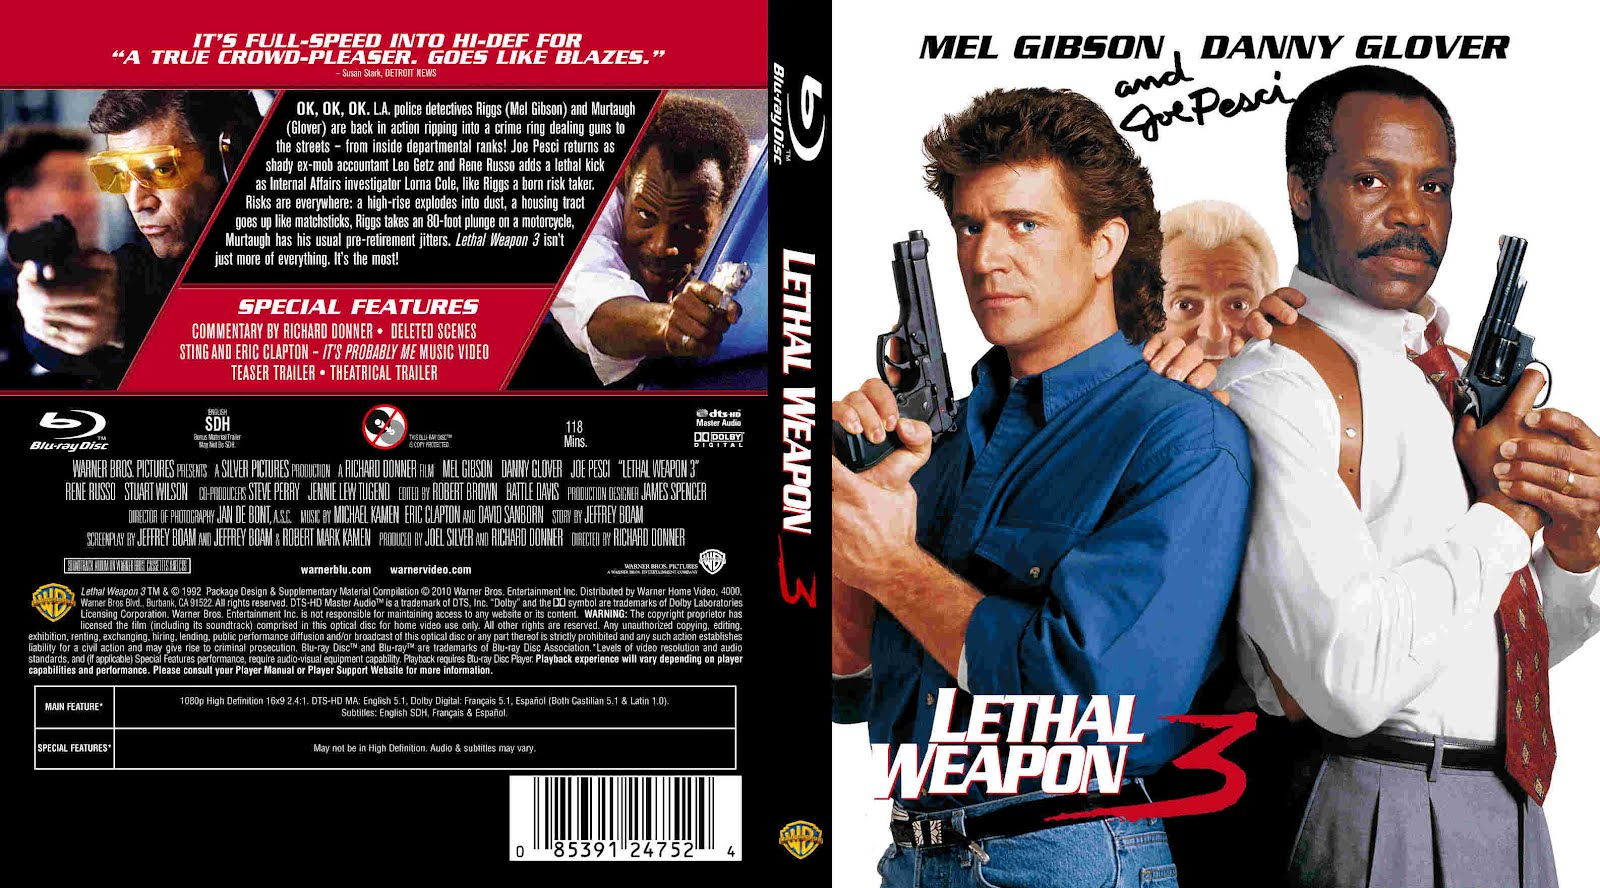 Arma mortal 3 -Lethal Weapon 1992 -Mg.,Mf.y Sf.-